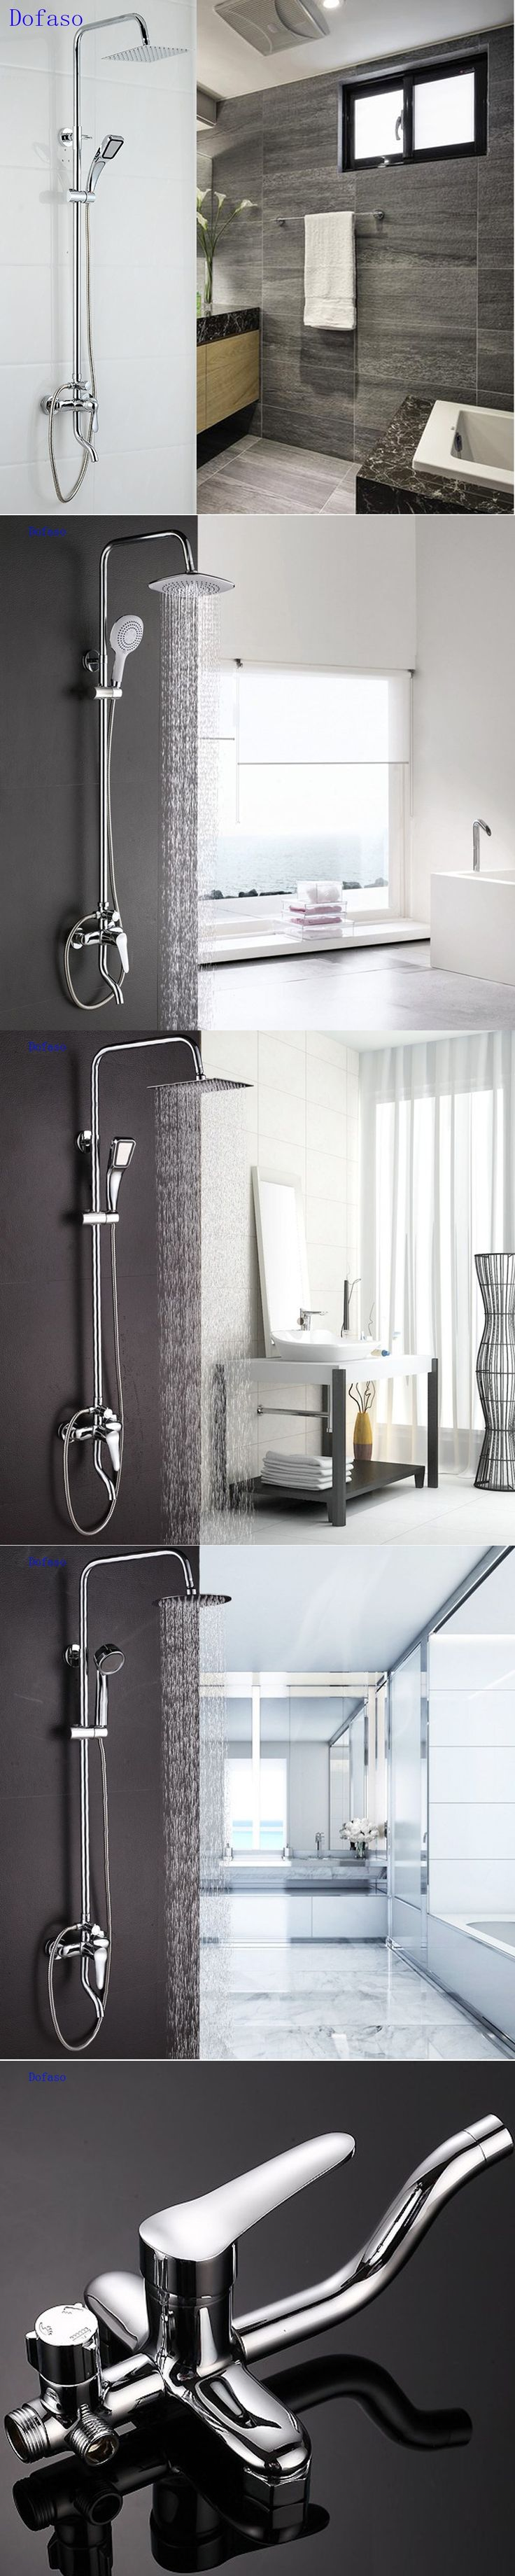 dofaso 8 inch shower chrome faucet hight Brushed stainless Rain Shower Set Tub And chrome Faucet Shower tap Shower kit System